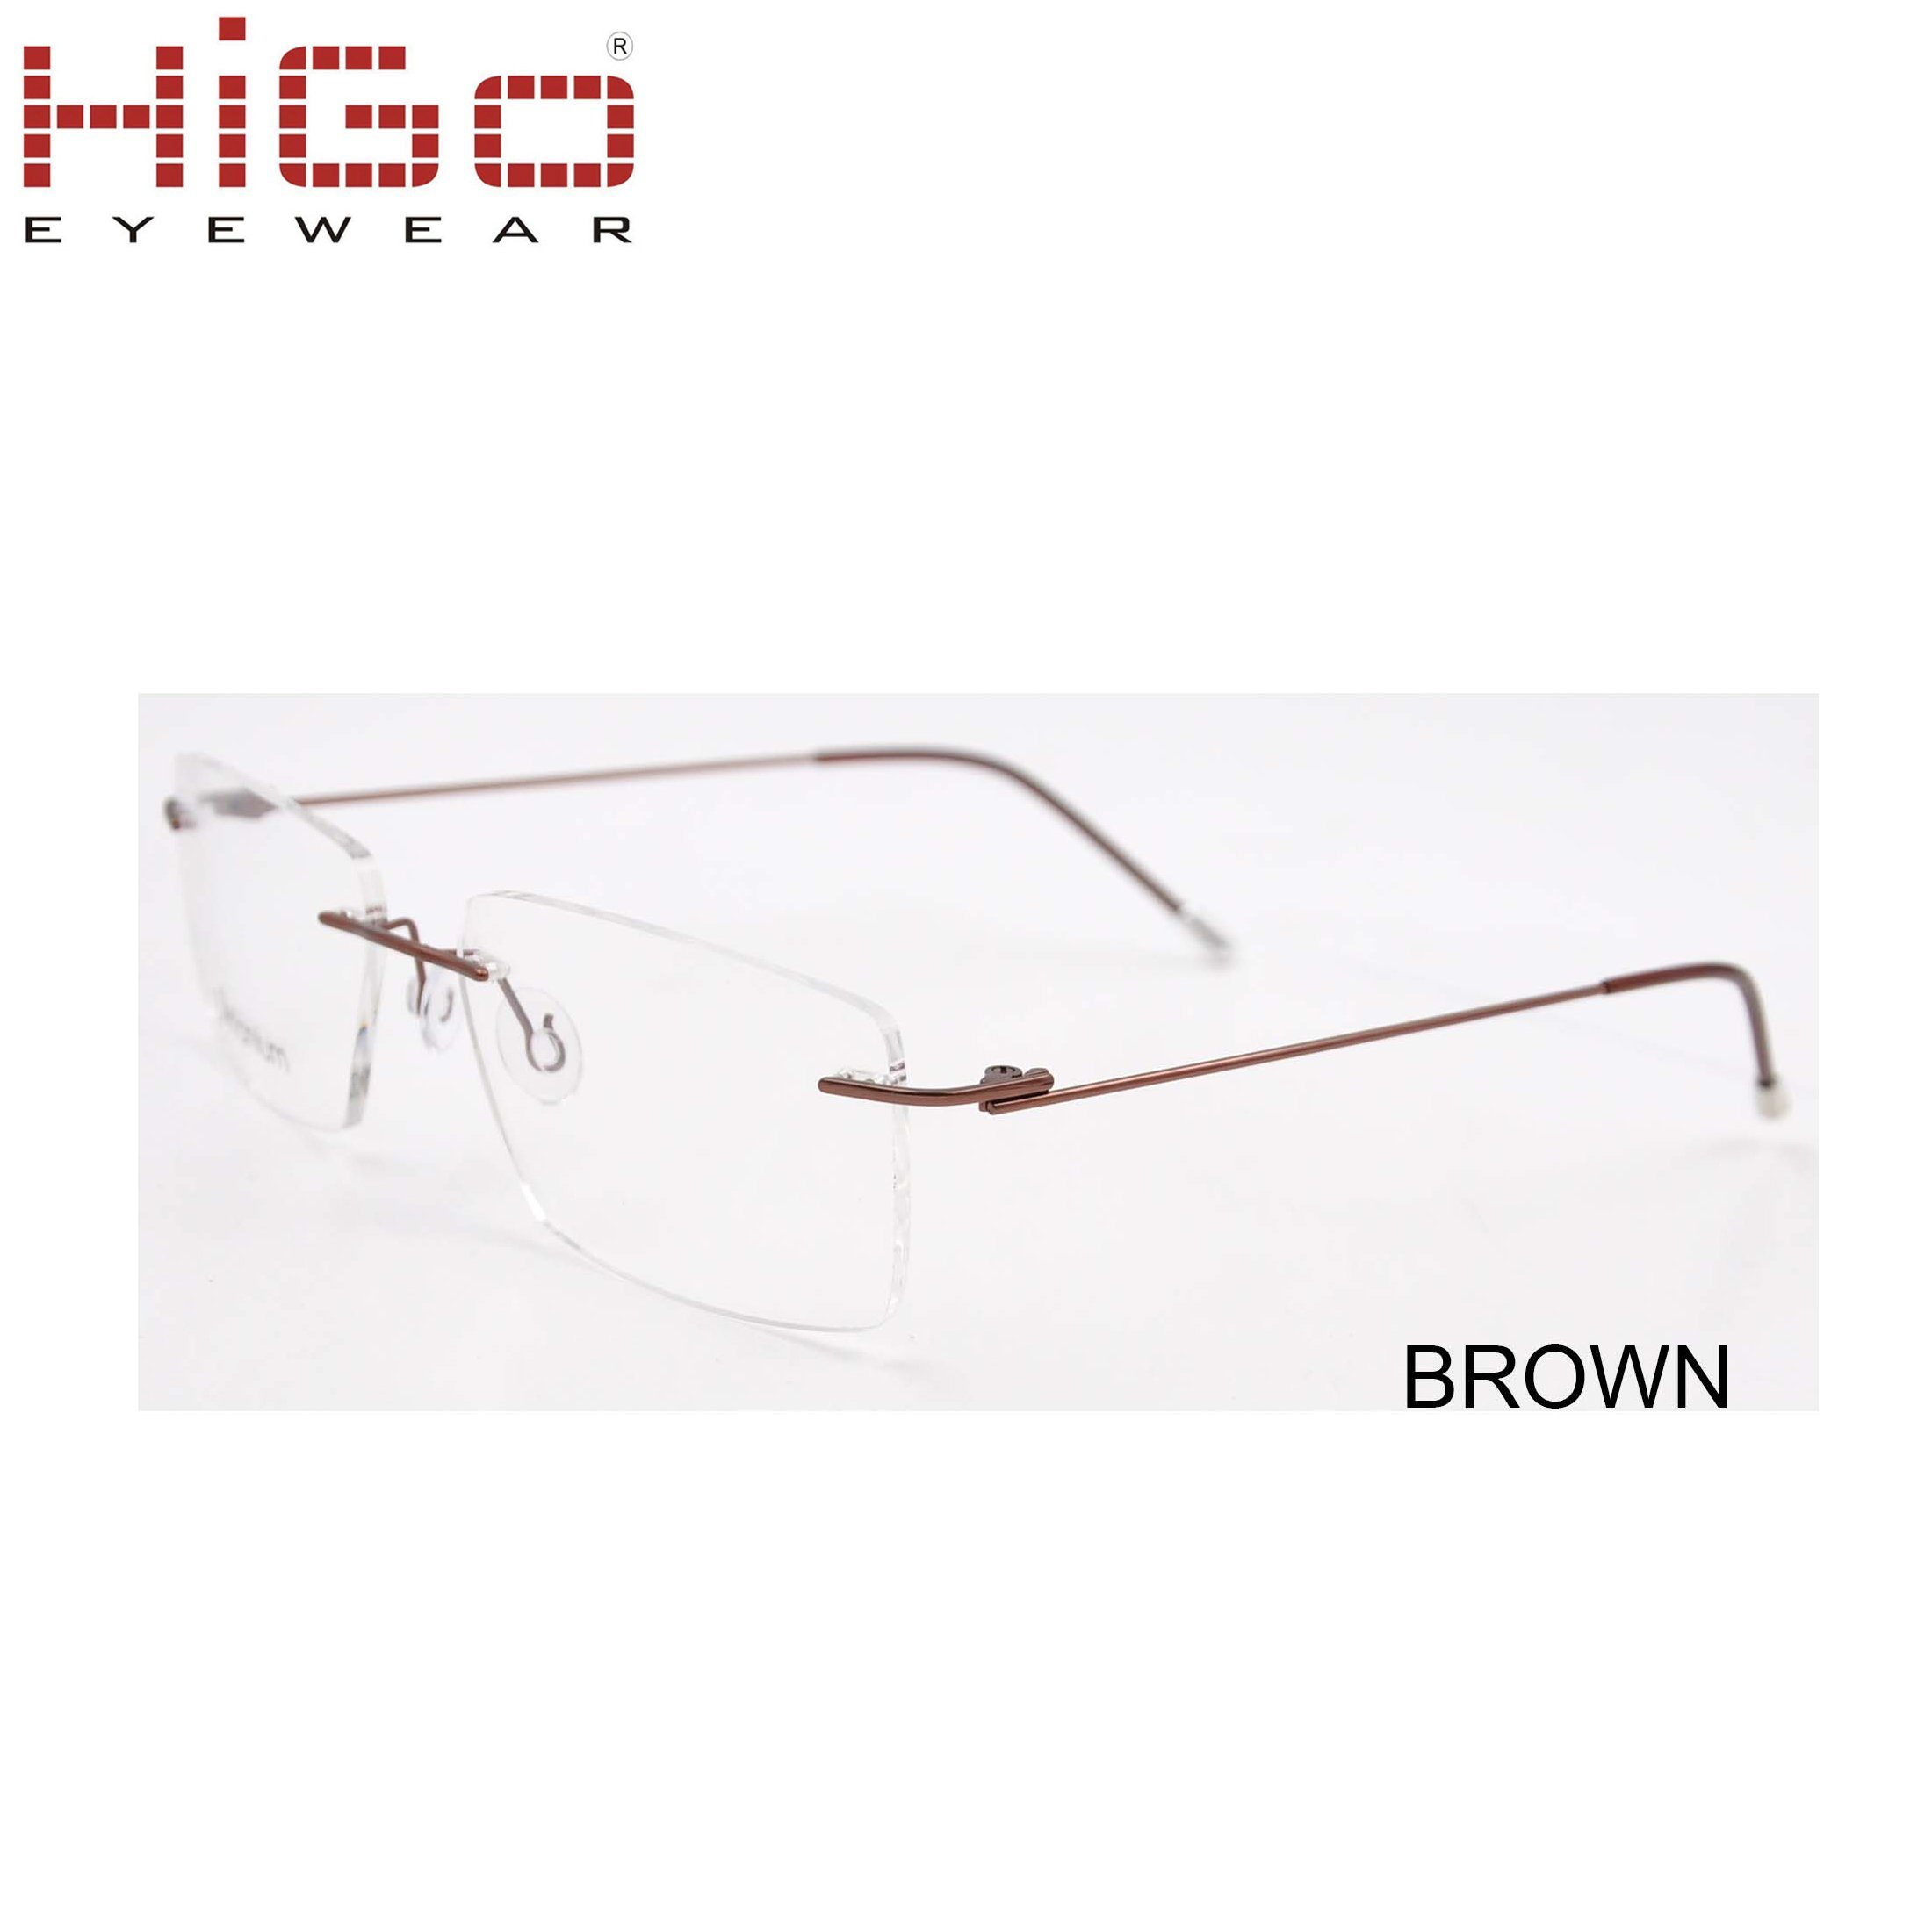 340cfa5ca61 New Brand Titanium Rimless Eyeglasses Frames Stainless Steel Square Glasses  Optical Frame for Male and Women